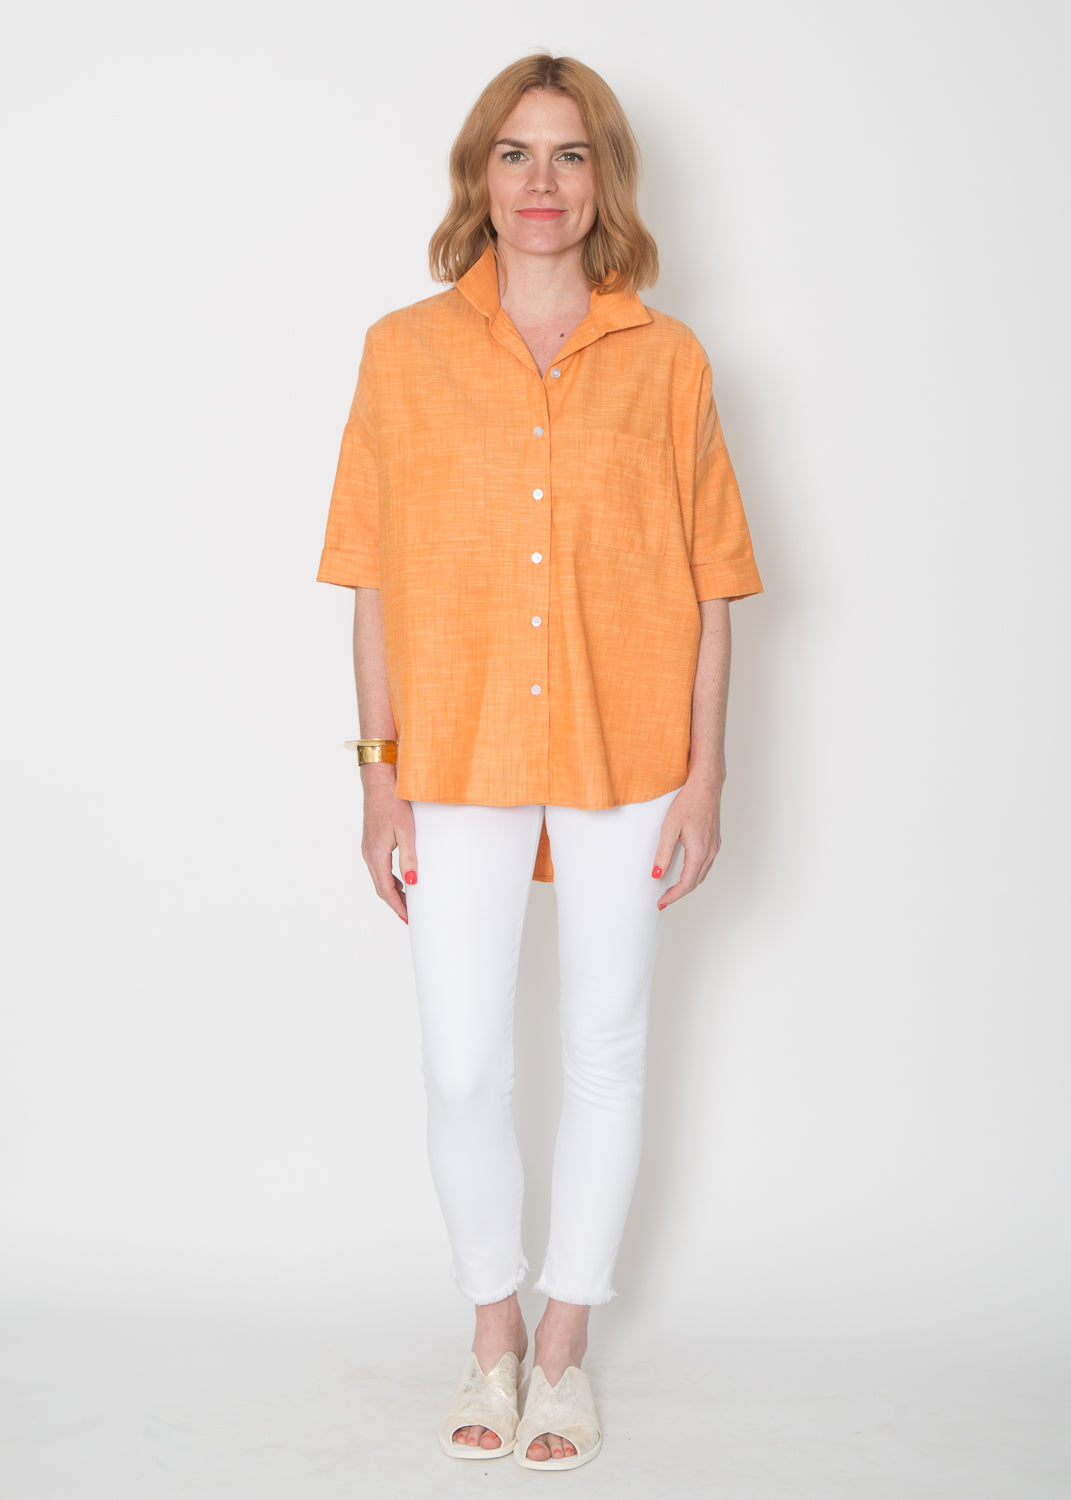 SBJ Austin Stephanie Top Tangerine